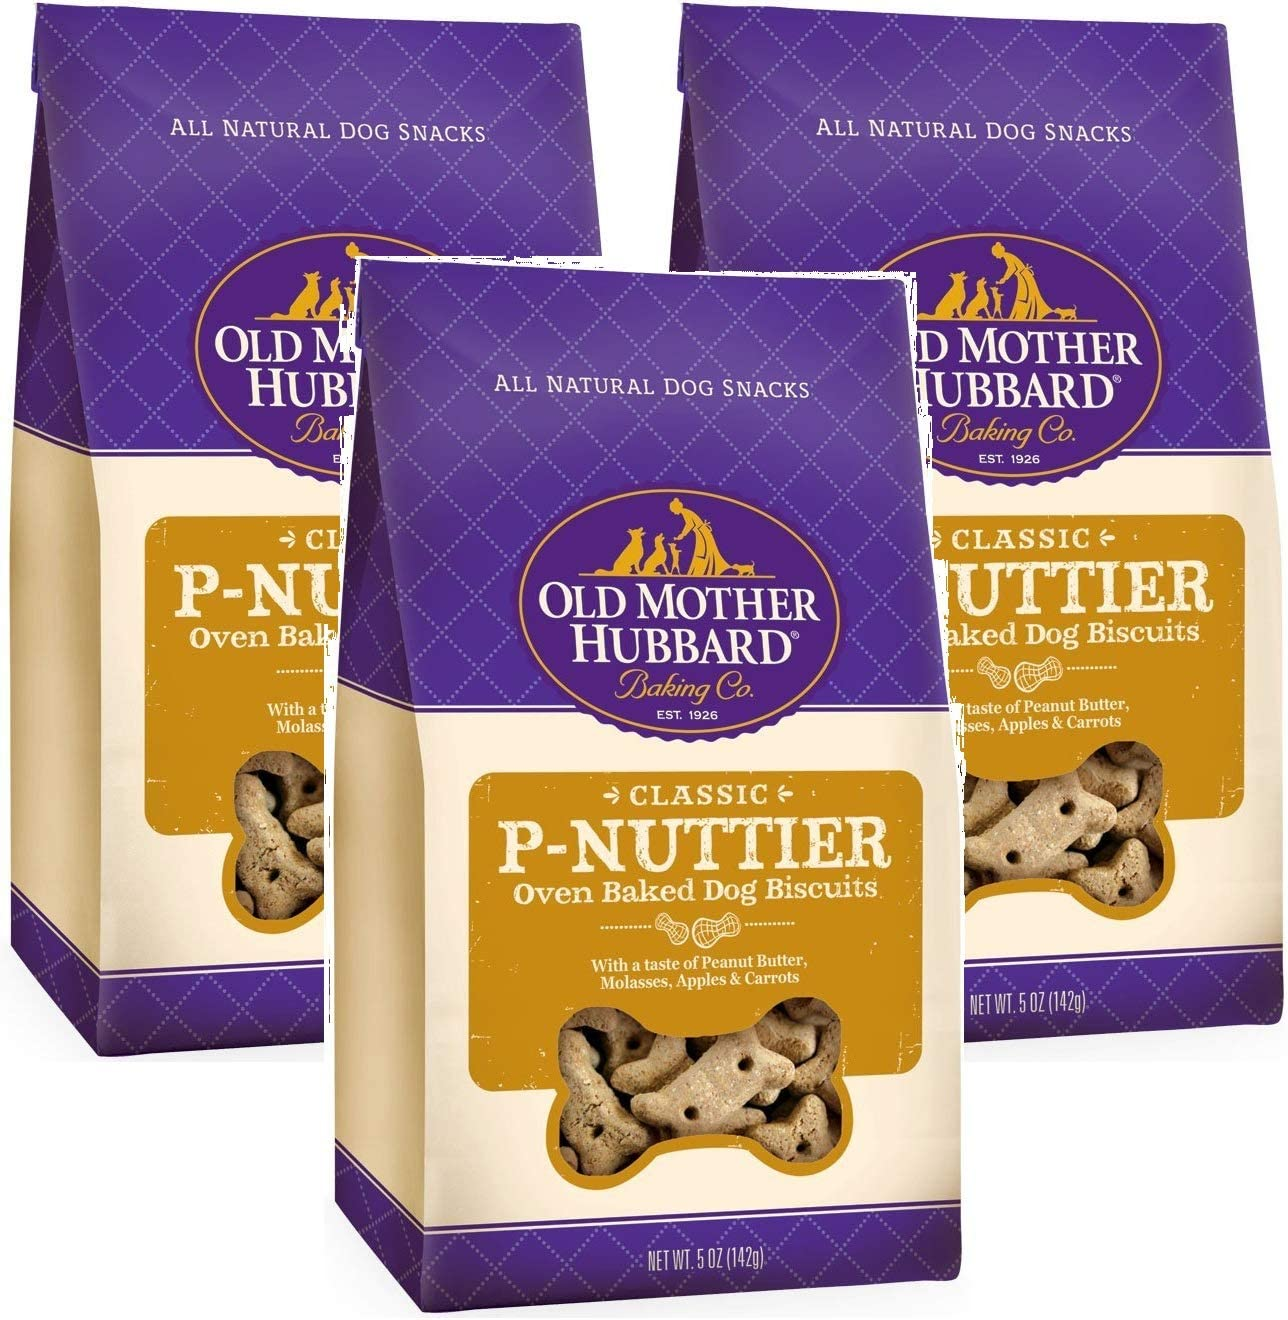 Old Mother Hubbard 3 Pack of Crunchy Classic Natural Dog Treats, P-Nuttier Mini Biscuits, 5 Ounces Per Bag